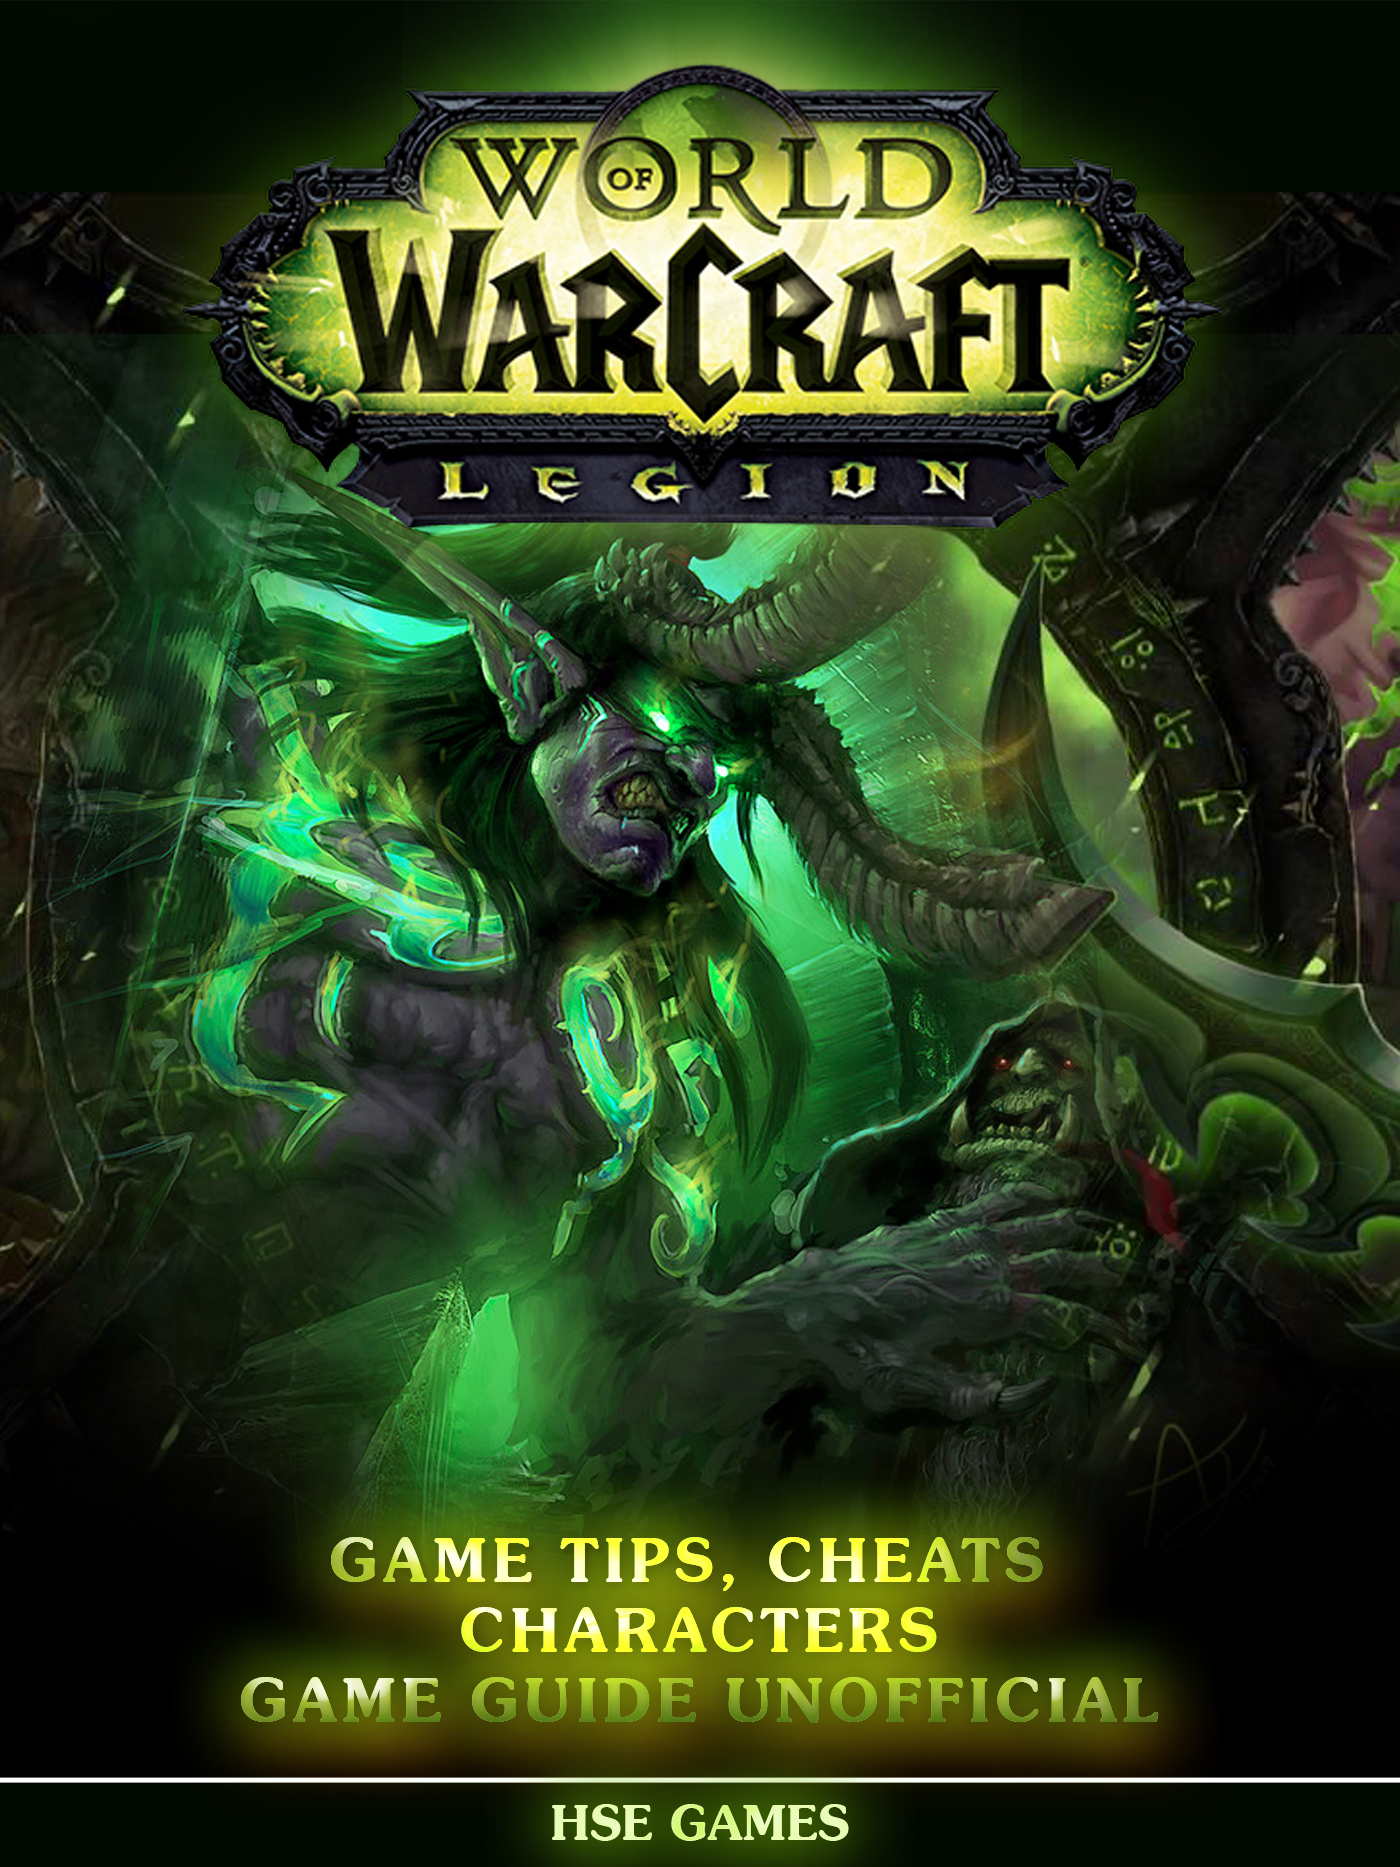 Warcraft Libros Libros World Of Warcraft Pdf Espanol Climatestrongwind